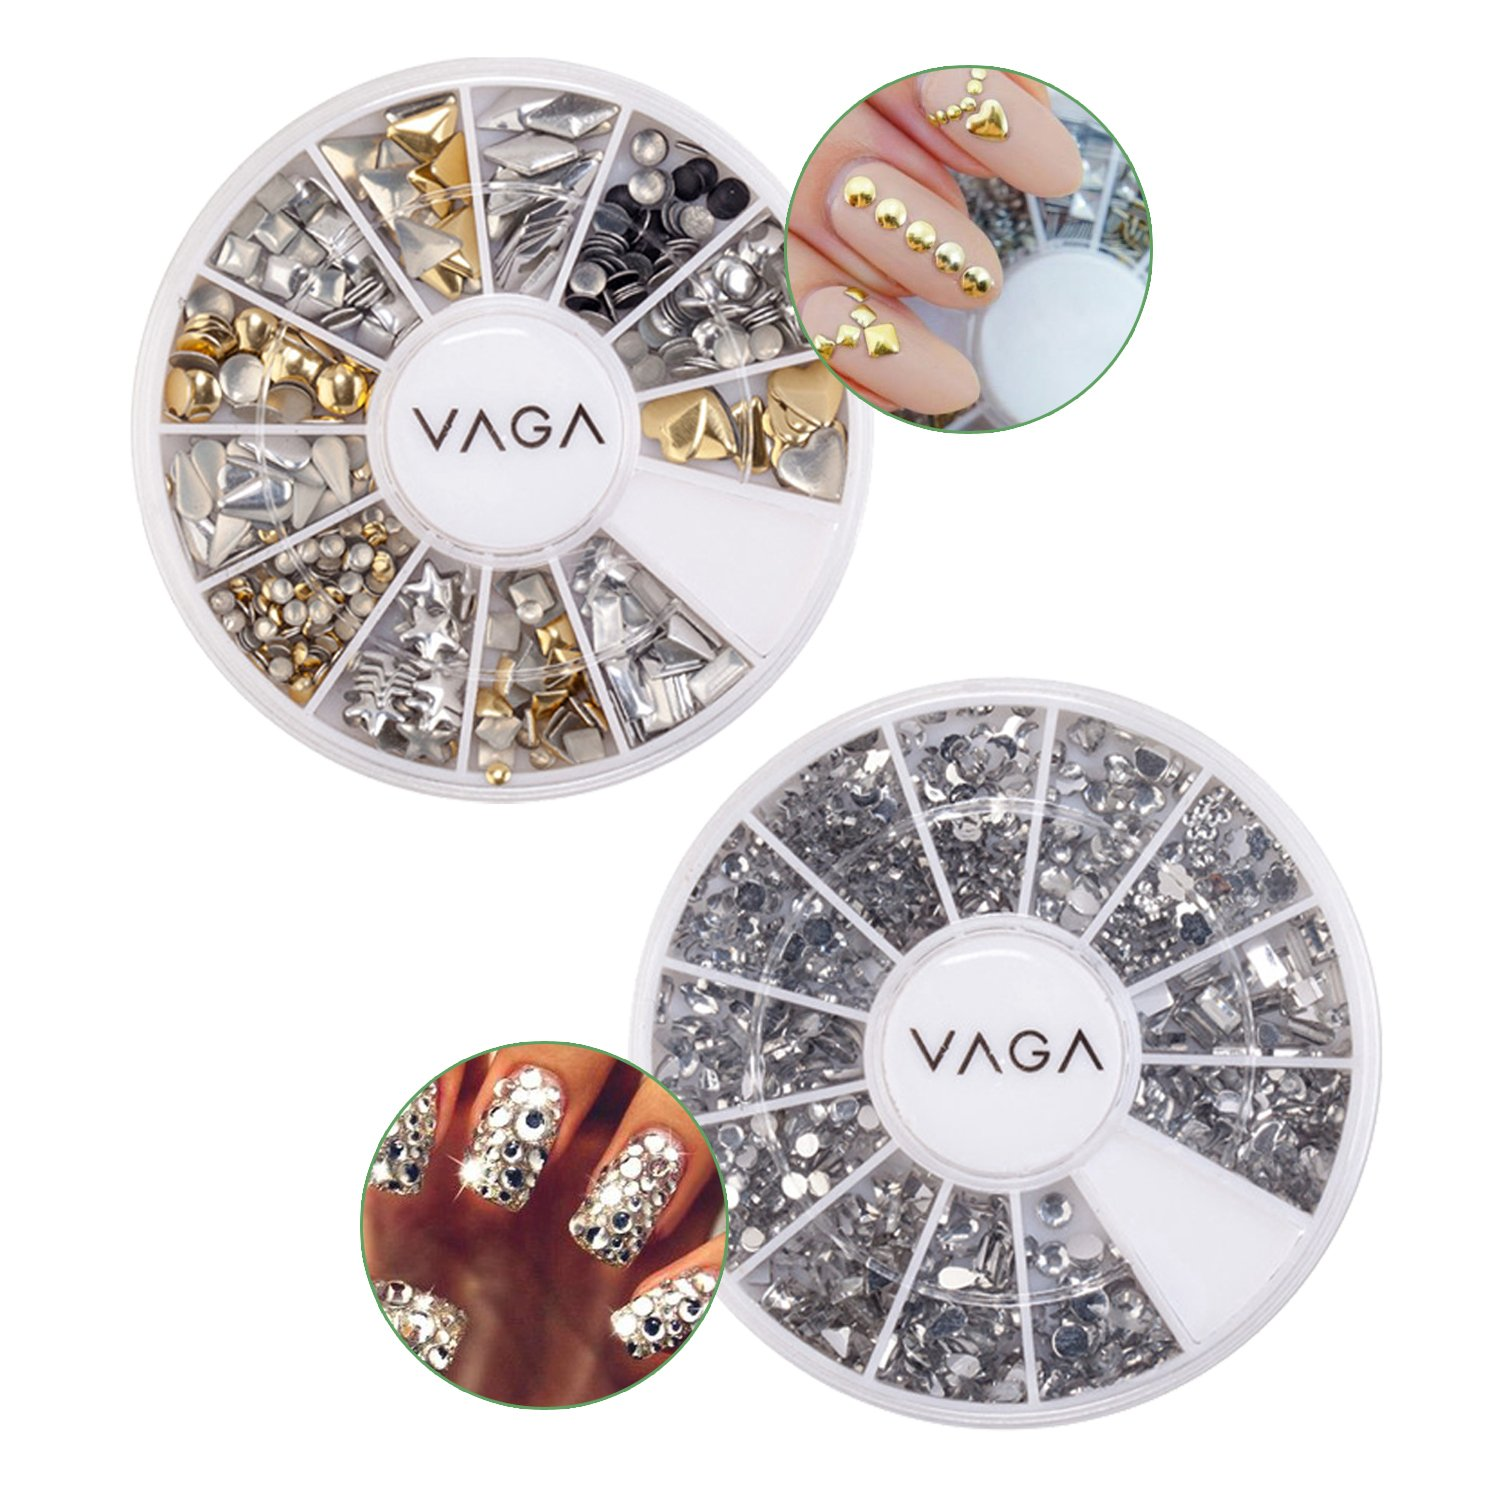 Quality Set of Professional Nail Art Decorations With Wheels of 3D Silver And Golden Metal Studs In 12 Different Shapes And 1200 Silver Rhinestones / Crystals In Different Shapes By VAGA